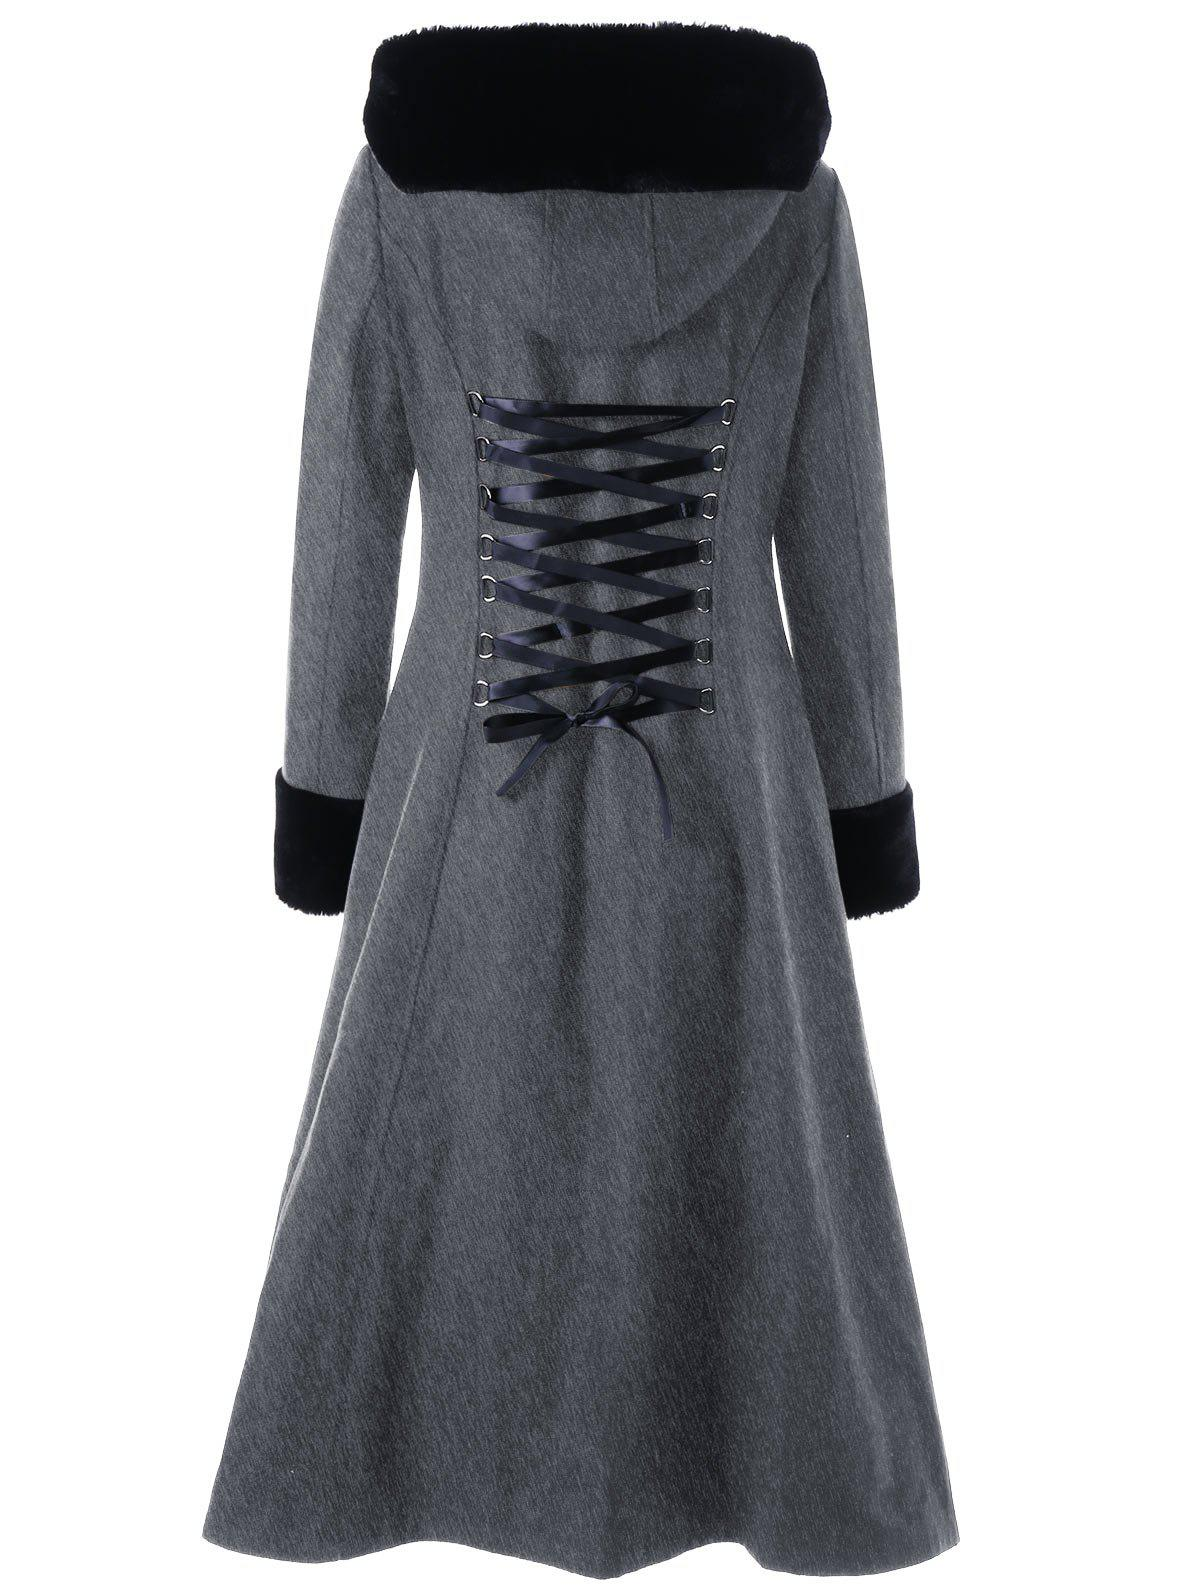 Hooded Longline Lace Up CoatWOMEN<br><br>Size: L; Color: HEATHER GRAY; Clothes Type: Wool &amp; Blends; Material: Polyester; Type: Slim; Shirt Length: Long; Sleeve Length: Full; Collar: Hooded; Pattern Type: Solid; Style: Gothic; Season: Fall,Spring,Winter; Weight: 1.2450kg; Package Contents: 1 x Coat;